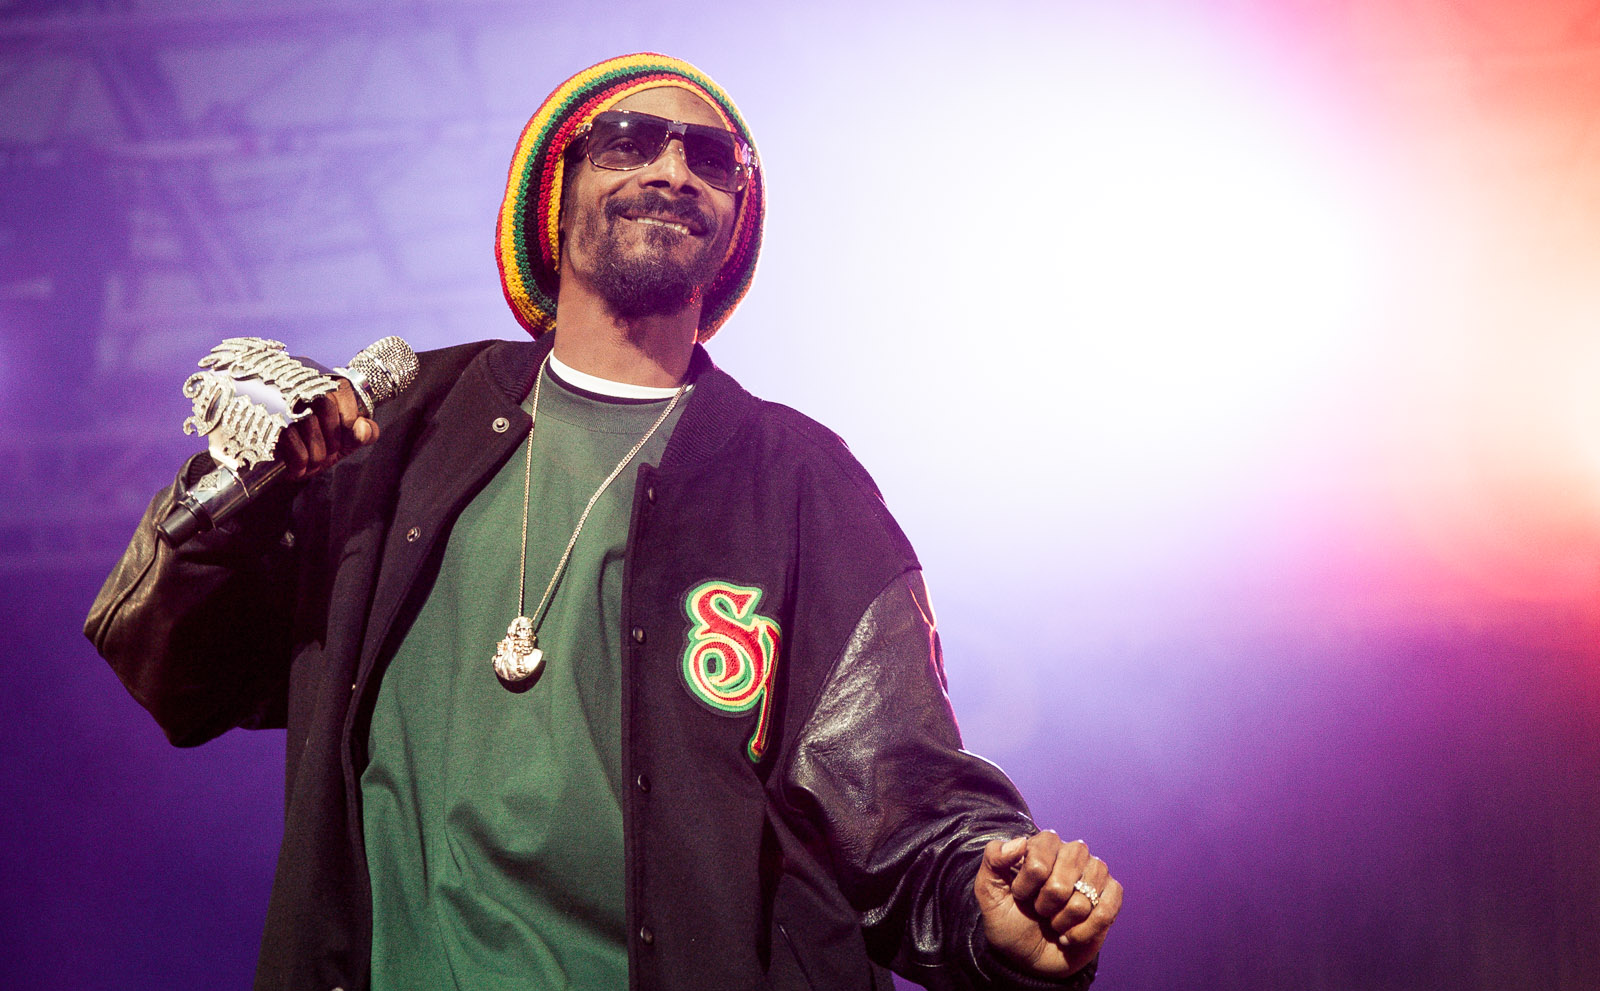 Snoop Dogg Facts